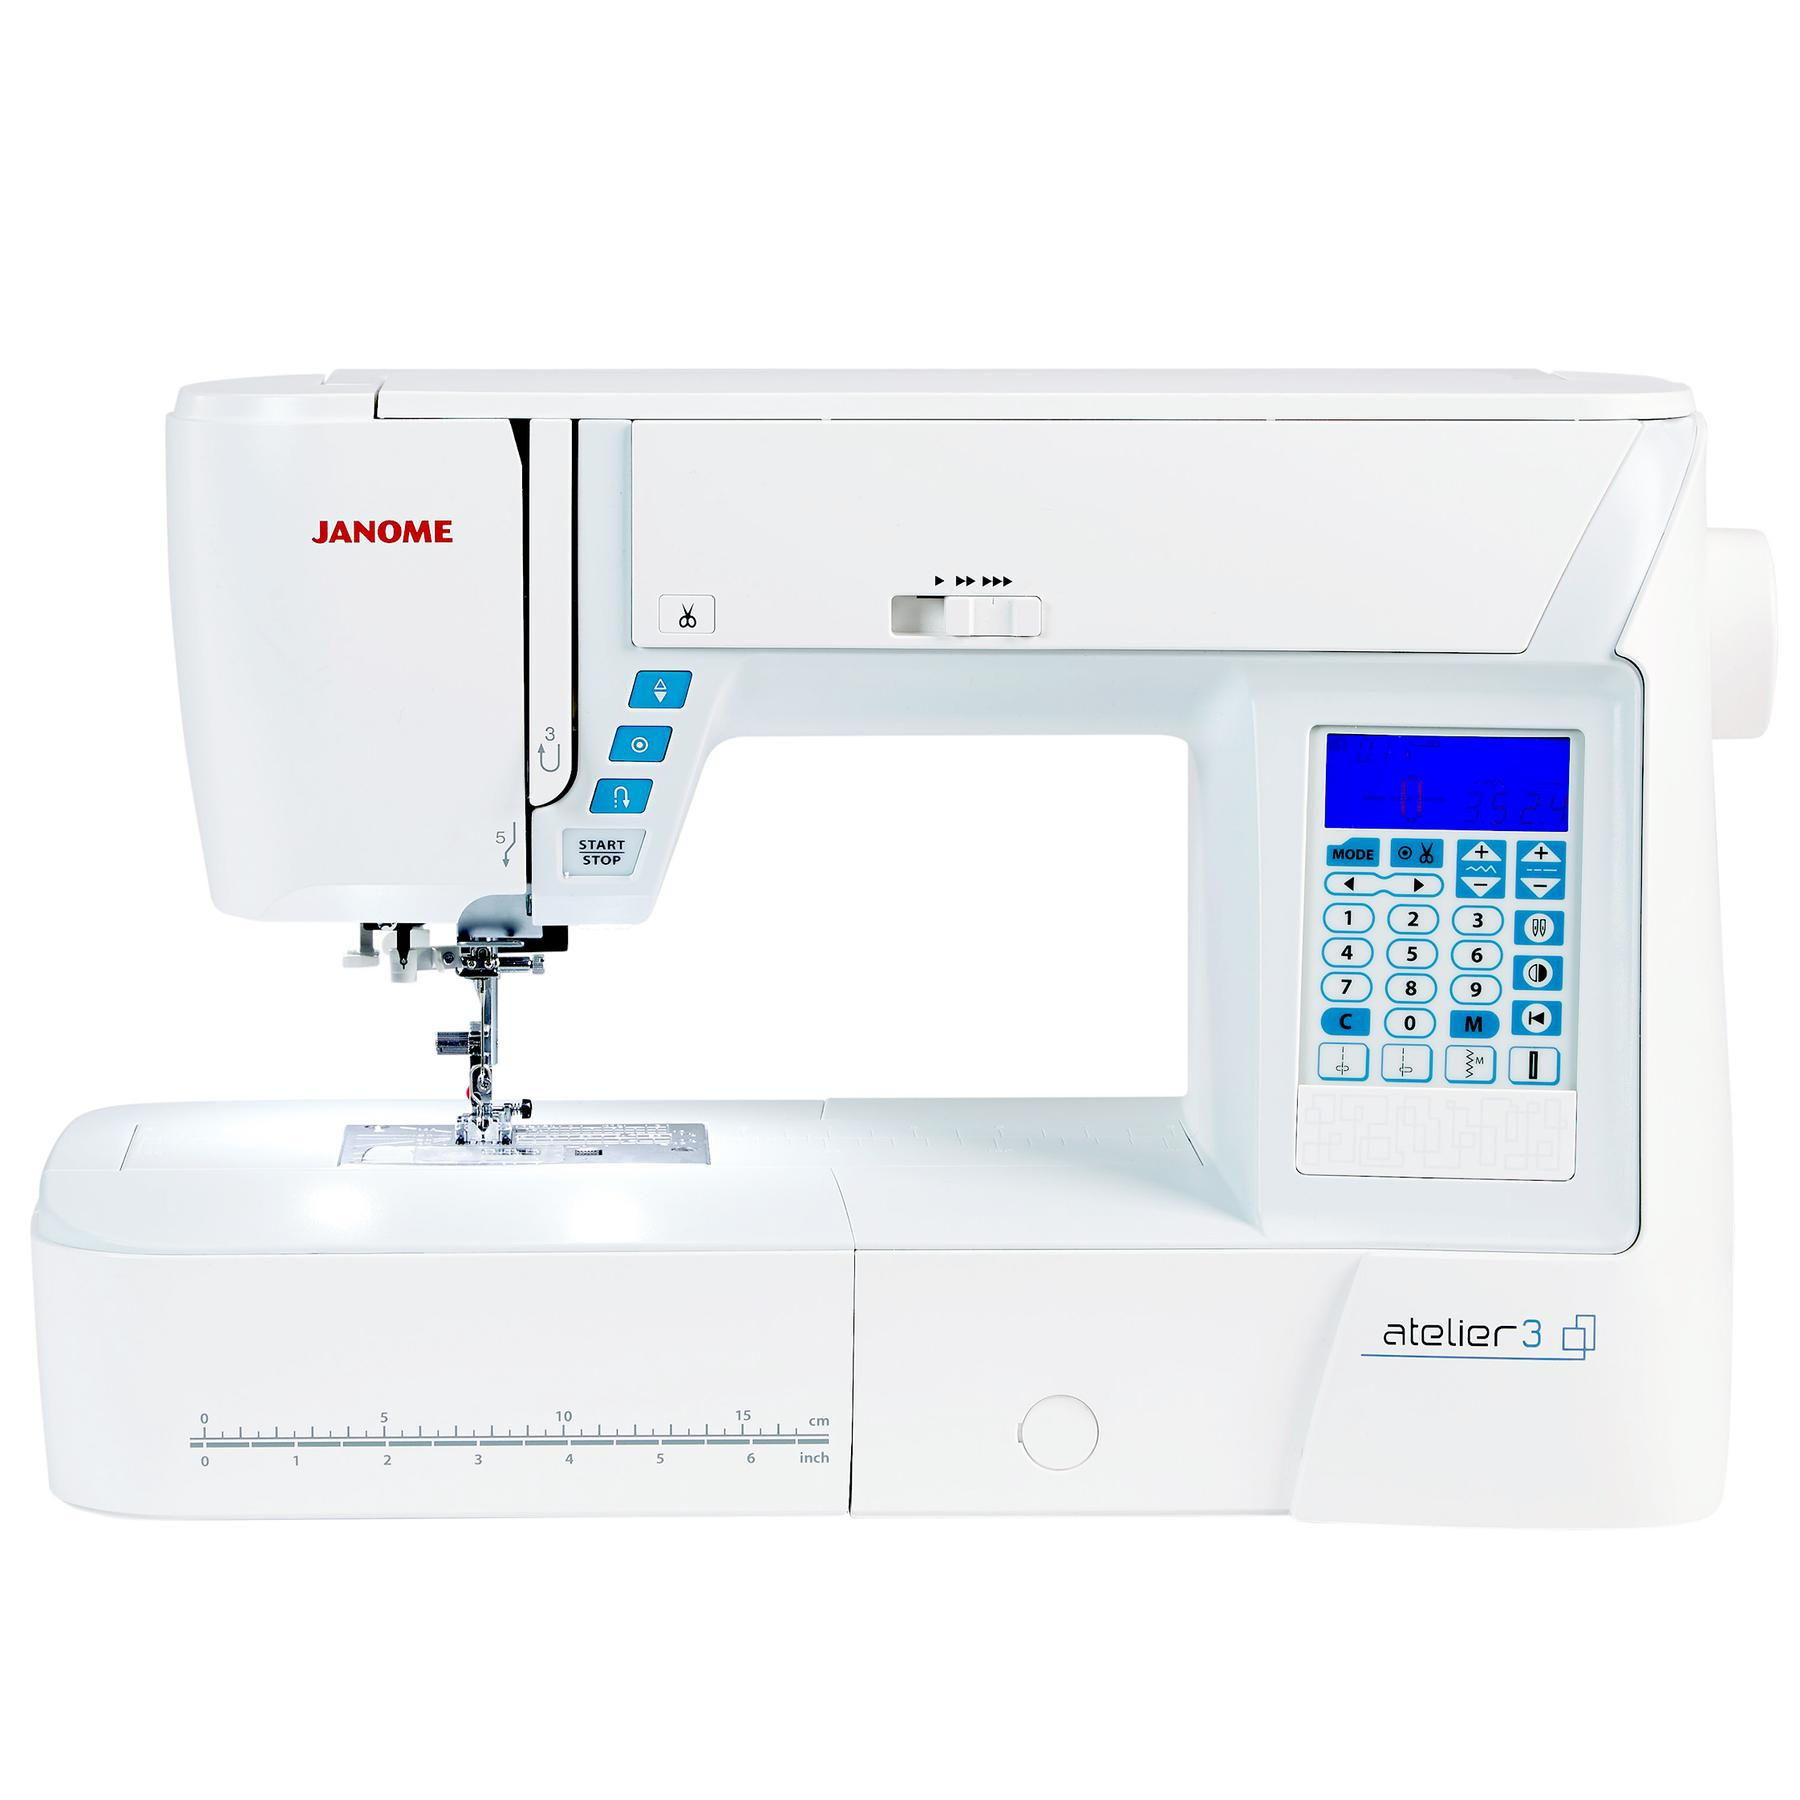 Janome atelier 3 frank nutt sewing machines ltd buy online for Janome memory craft 9500